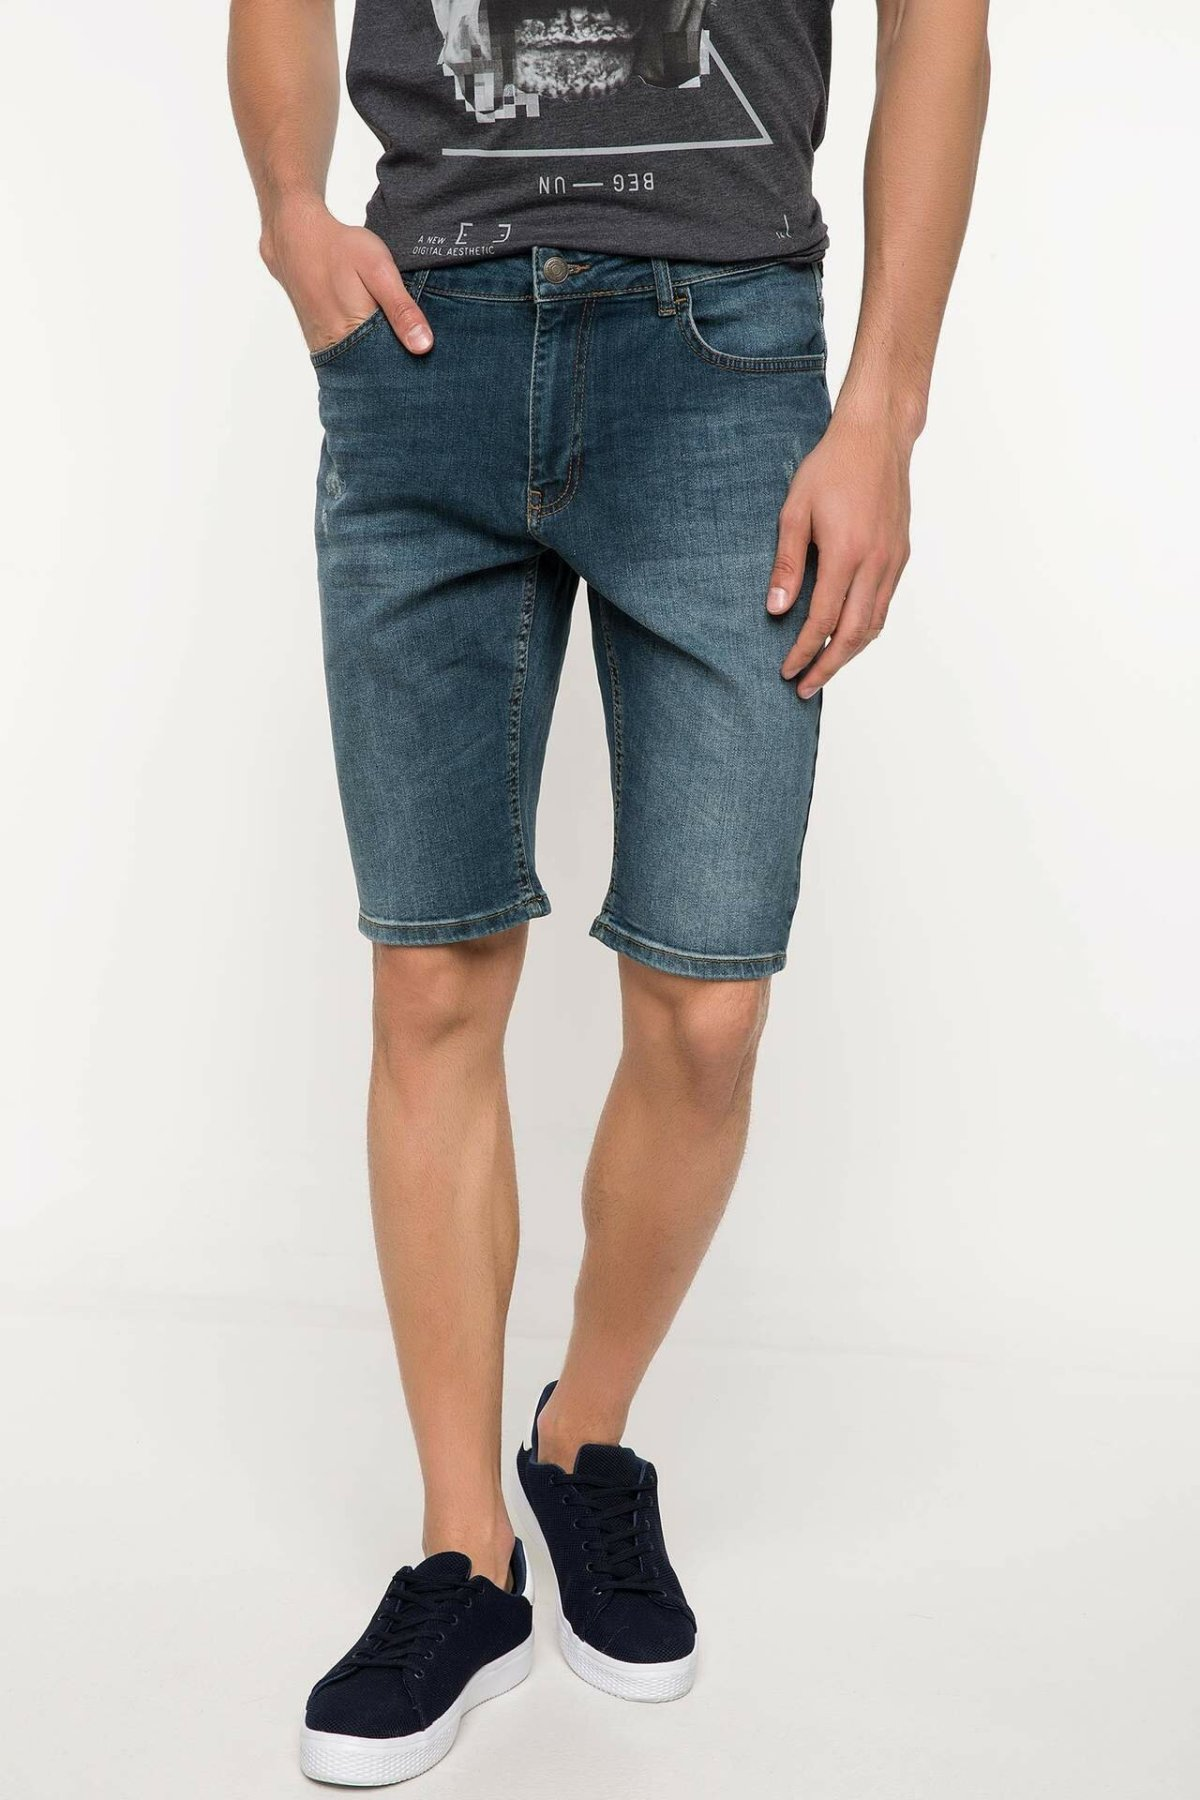 DeFacto Man Summer Blue Denim Shorts Men Casual Washed Skinny Denim Shorts Male Bermuda Bottoms-I8799AZ18SM